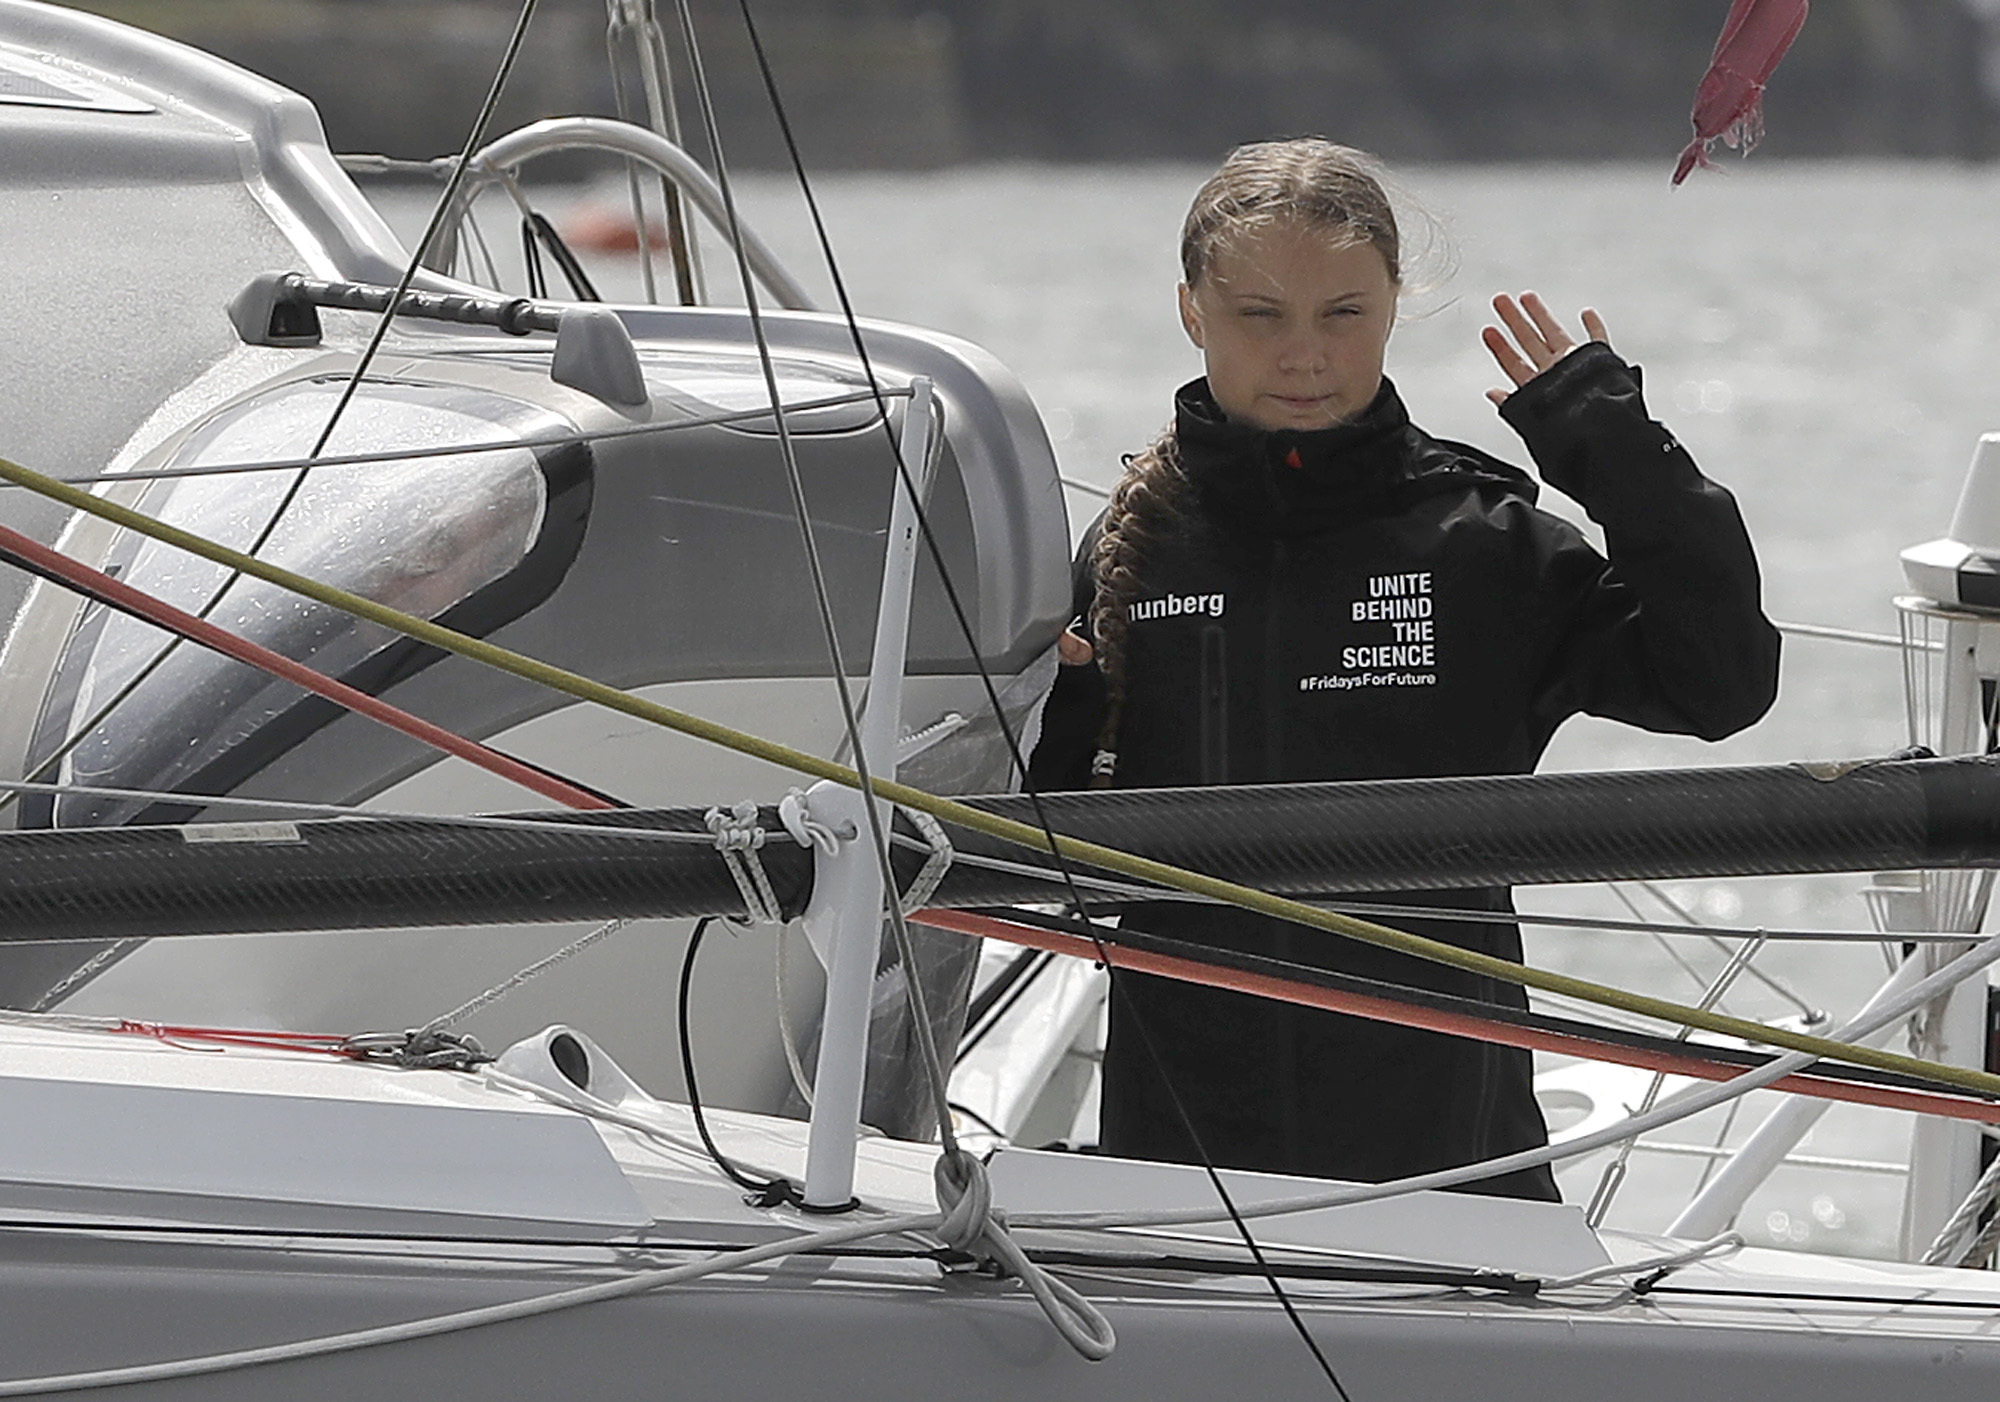 Climate change activist Greta Thunberg sets sail for New York in the 60ft Malizia II yacht from Mayflower Marina, on August 14, 2019 in Plymouth, England. (Credit: Kirsty Wigglesworth - WPA Pool/Getty Images)